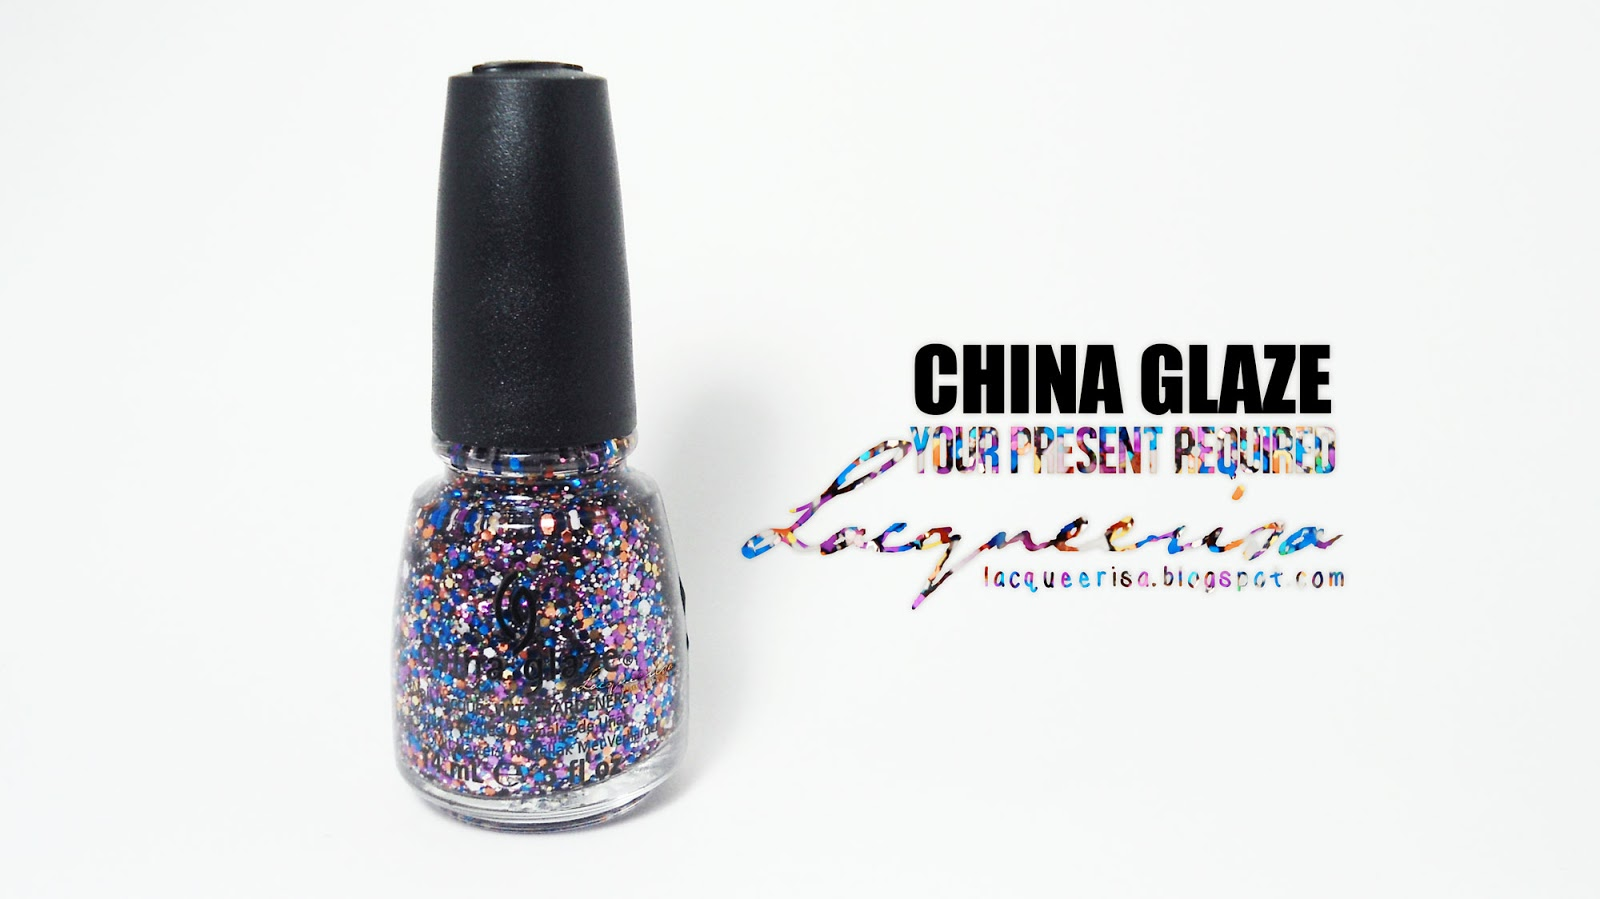 Lacqueerisa: China Glaze Your Present Required